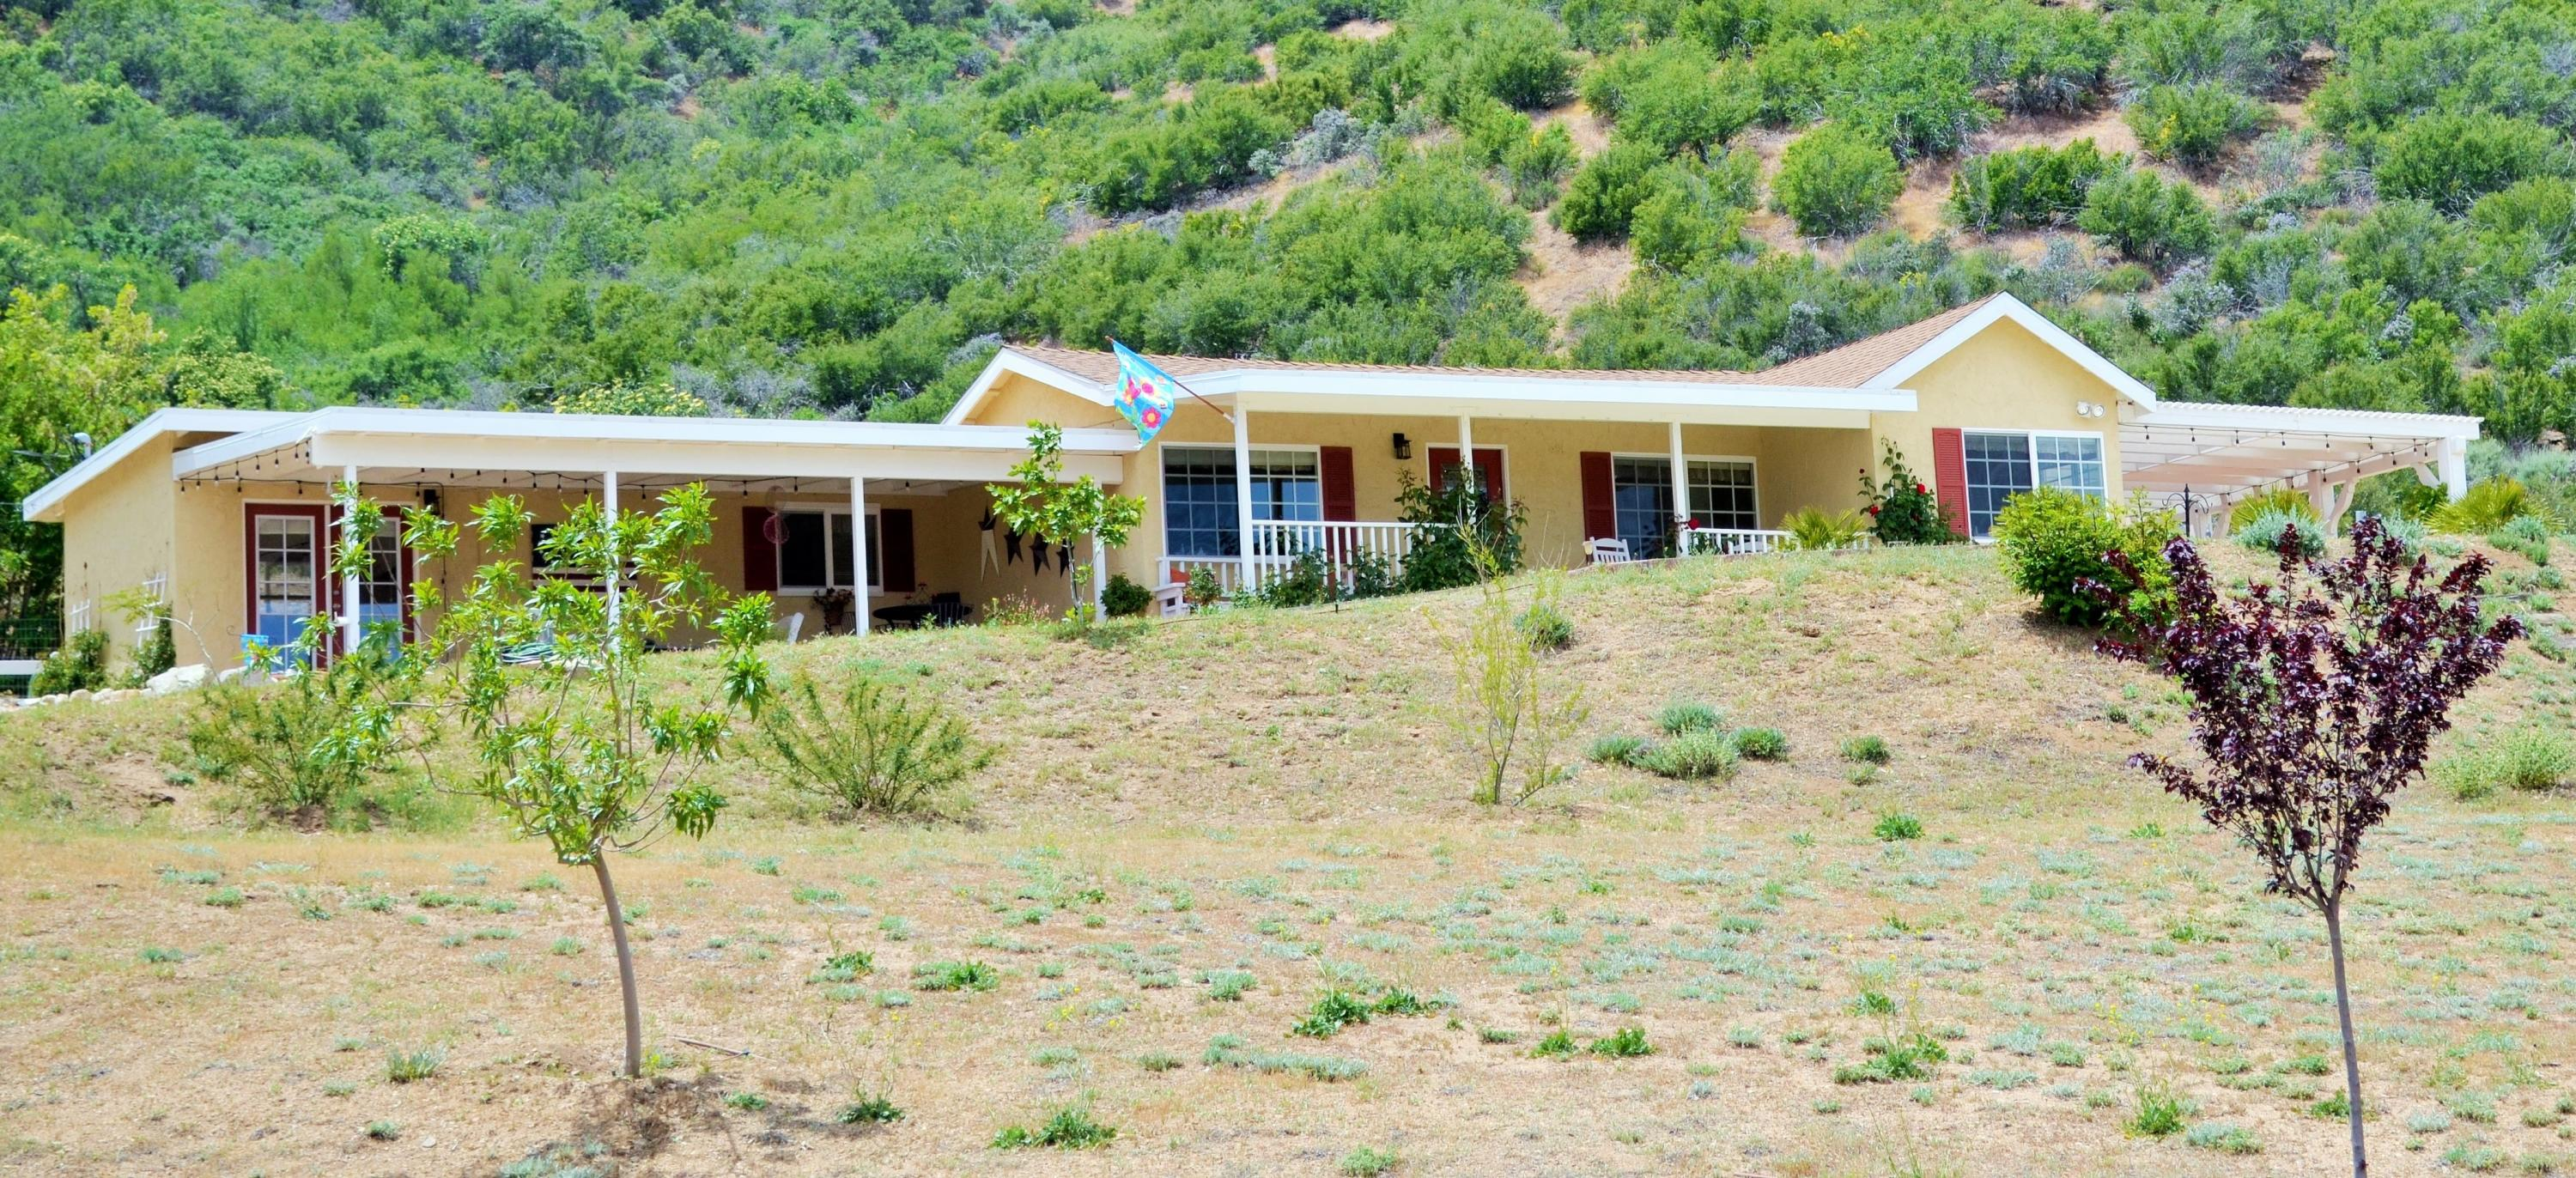 9070 Lost Valley Ranch Road, Leona Valley CA, 93551